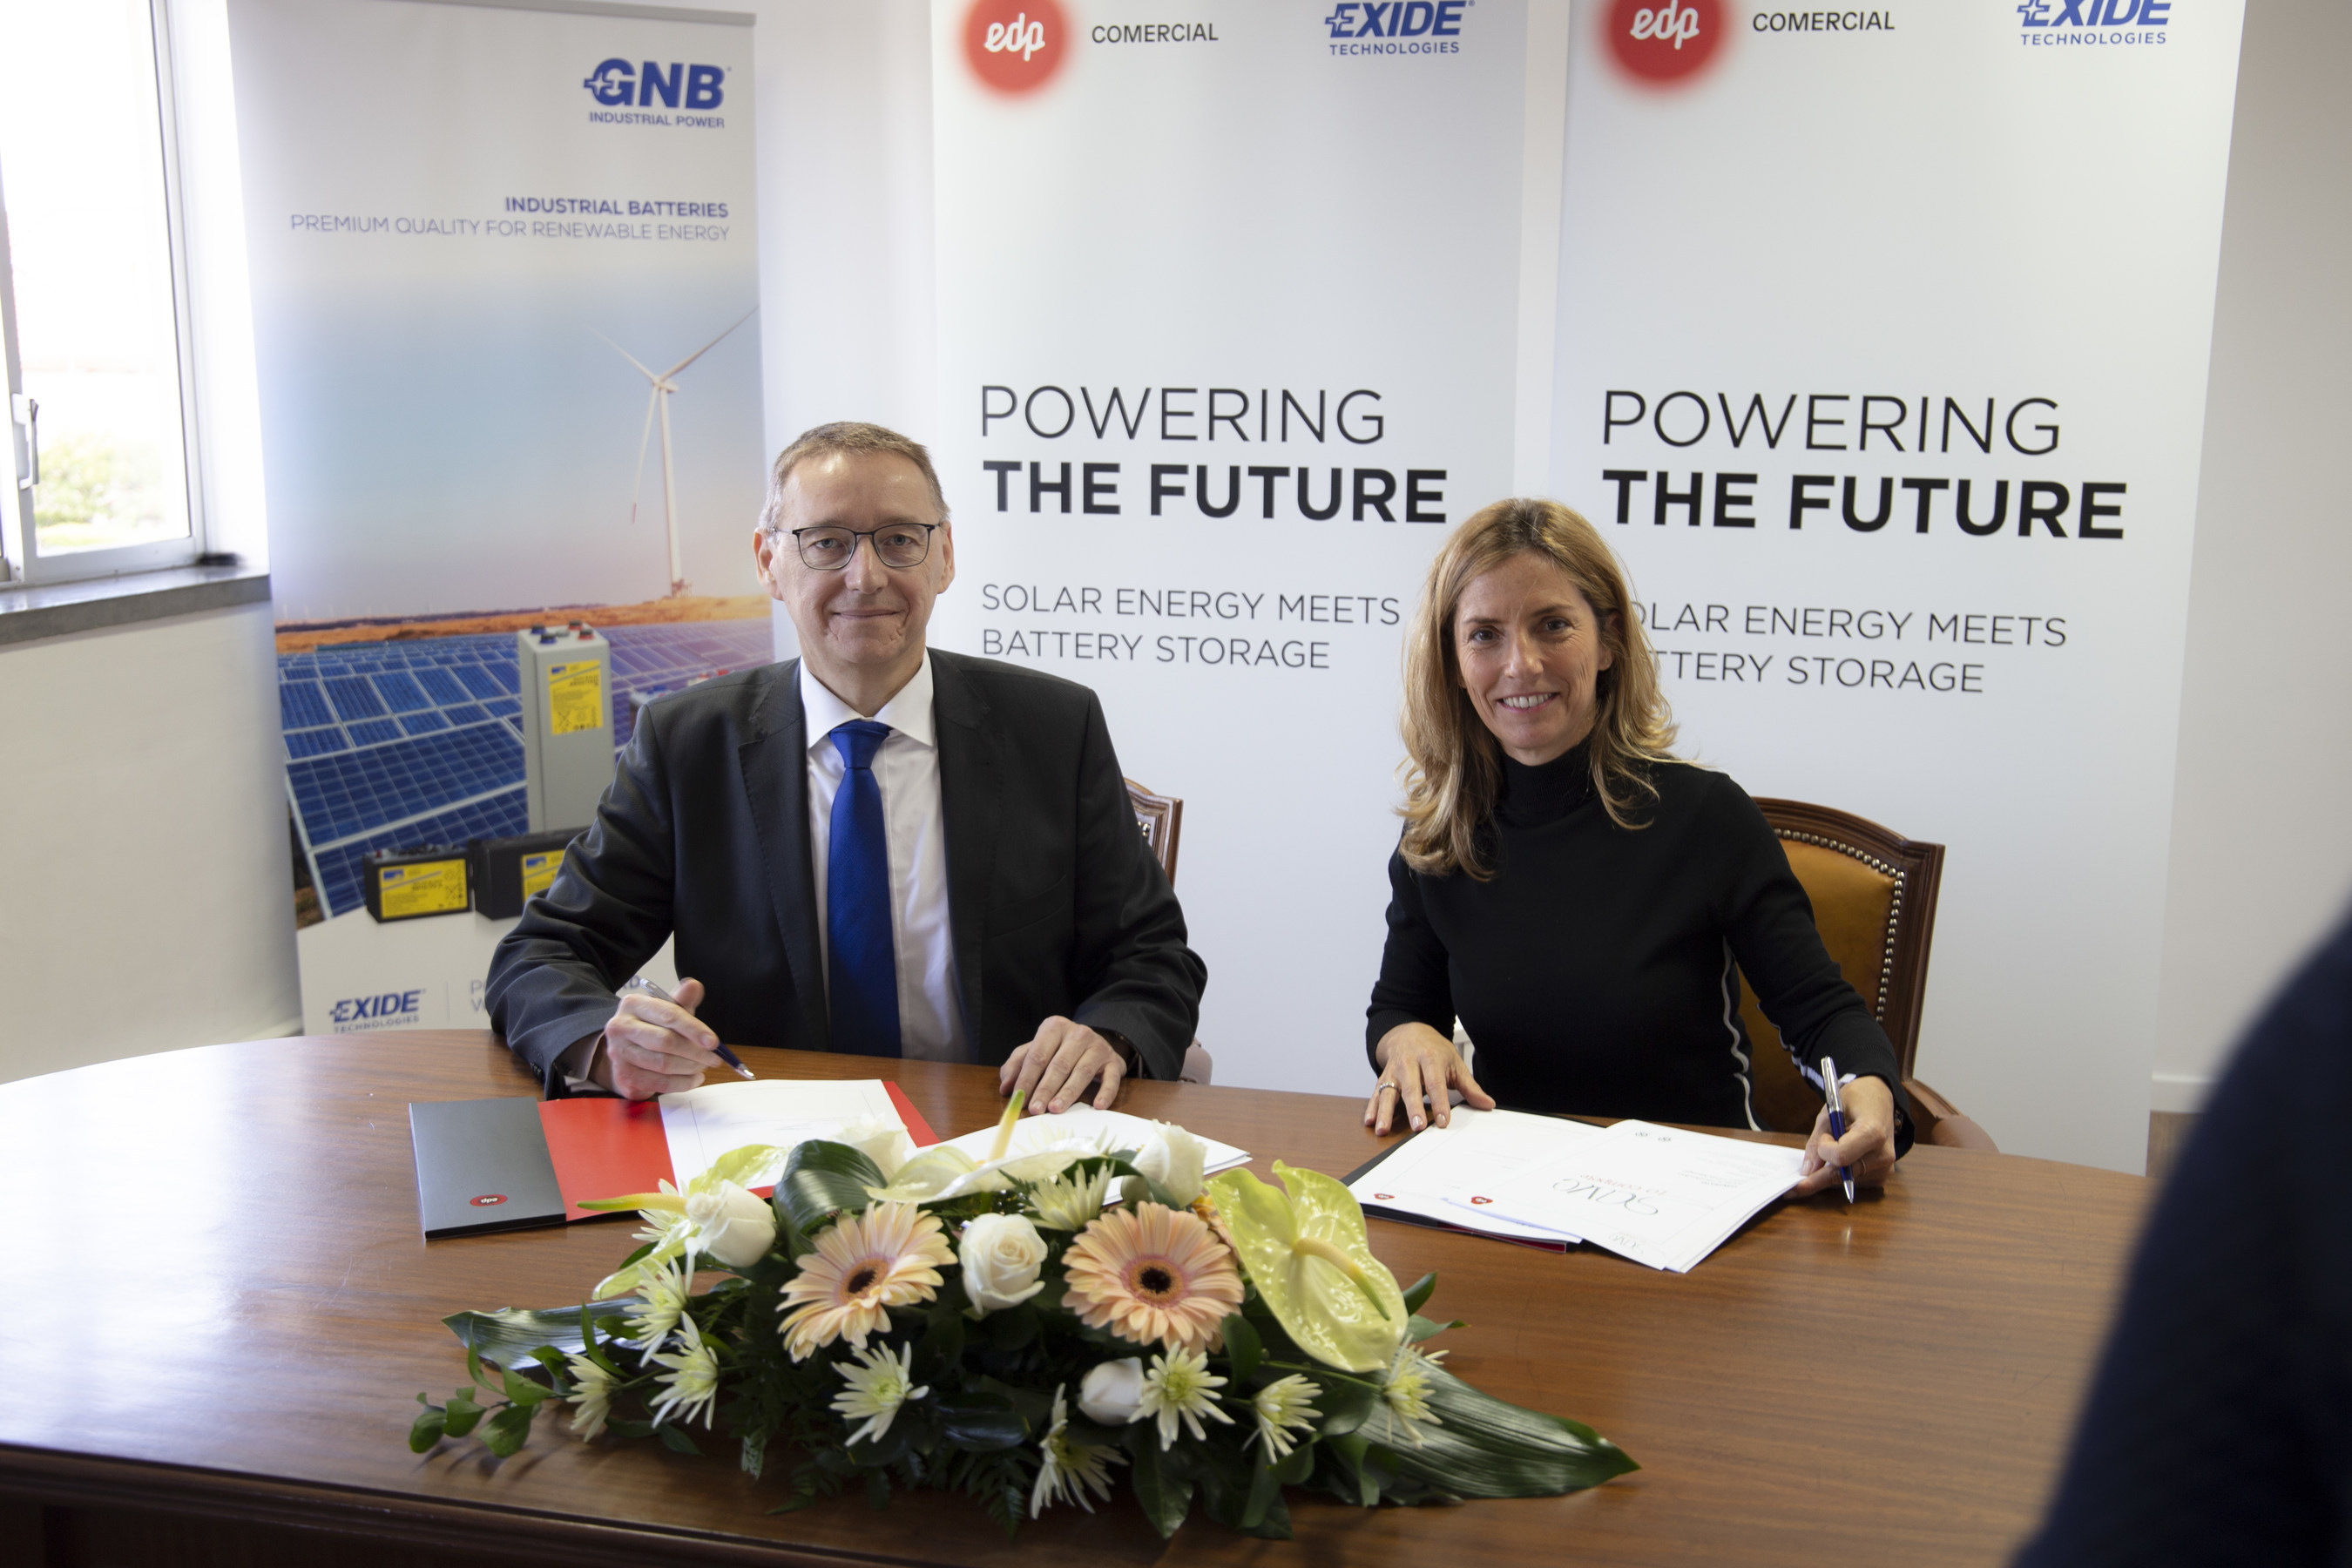 Exide Announces Groundbreaking Solar Installations in Portugal